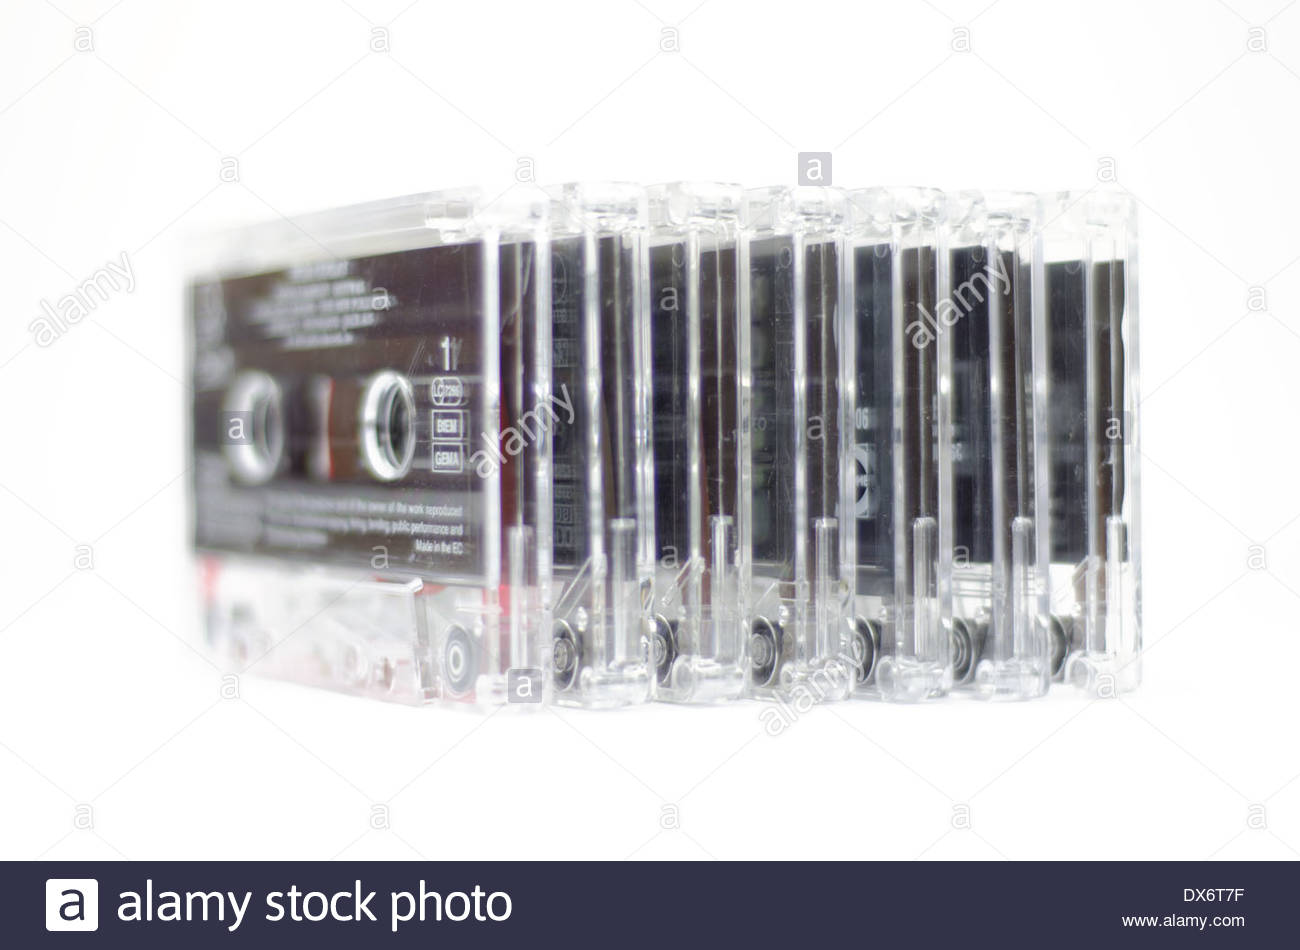 Audio cassette tapes - Stock Image